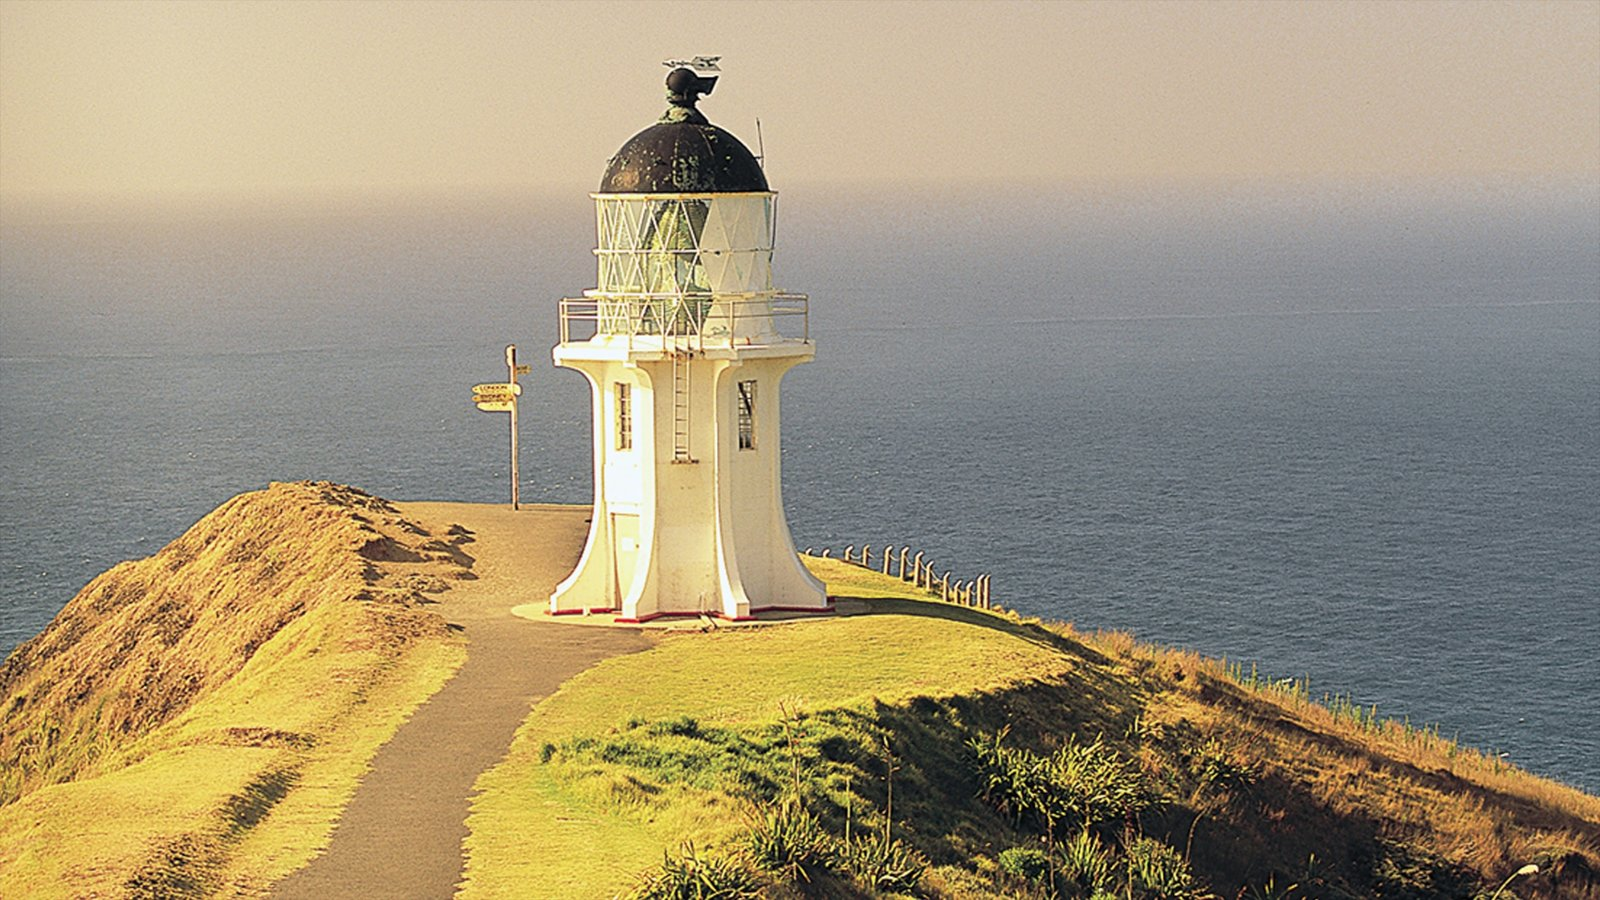 Cape Reinga Lighthouse que incluye vistas generales de la costa y un faro